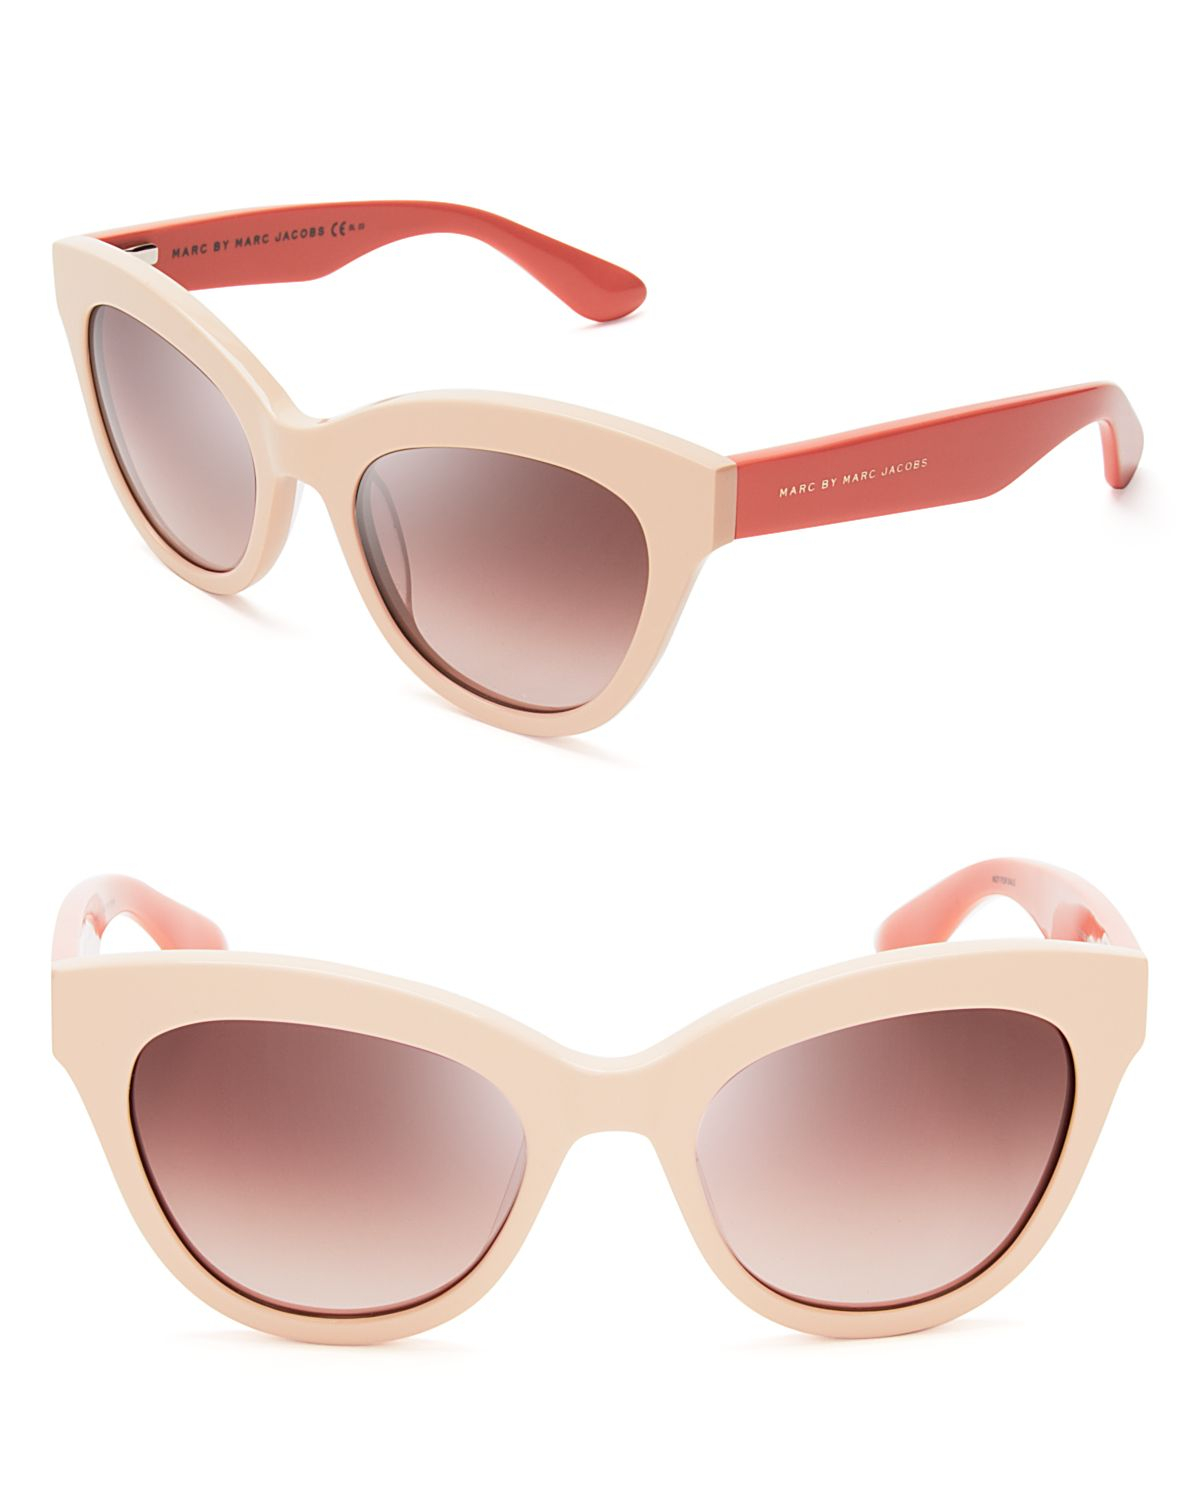 2c3e07396d Gallery. Previously sold at  Bloomingdale s · Women s Cat Eye Sunglasses